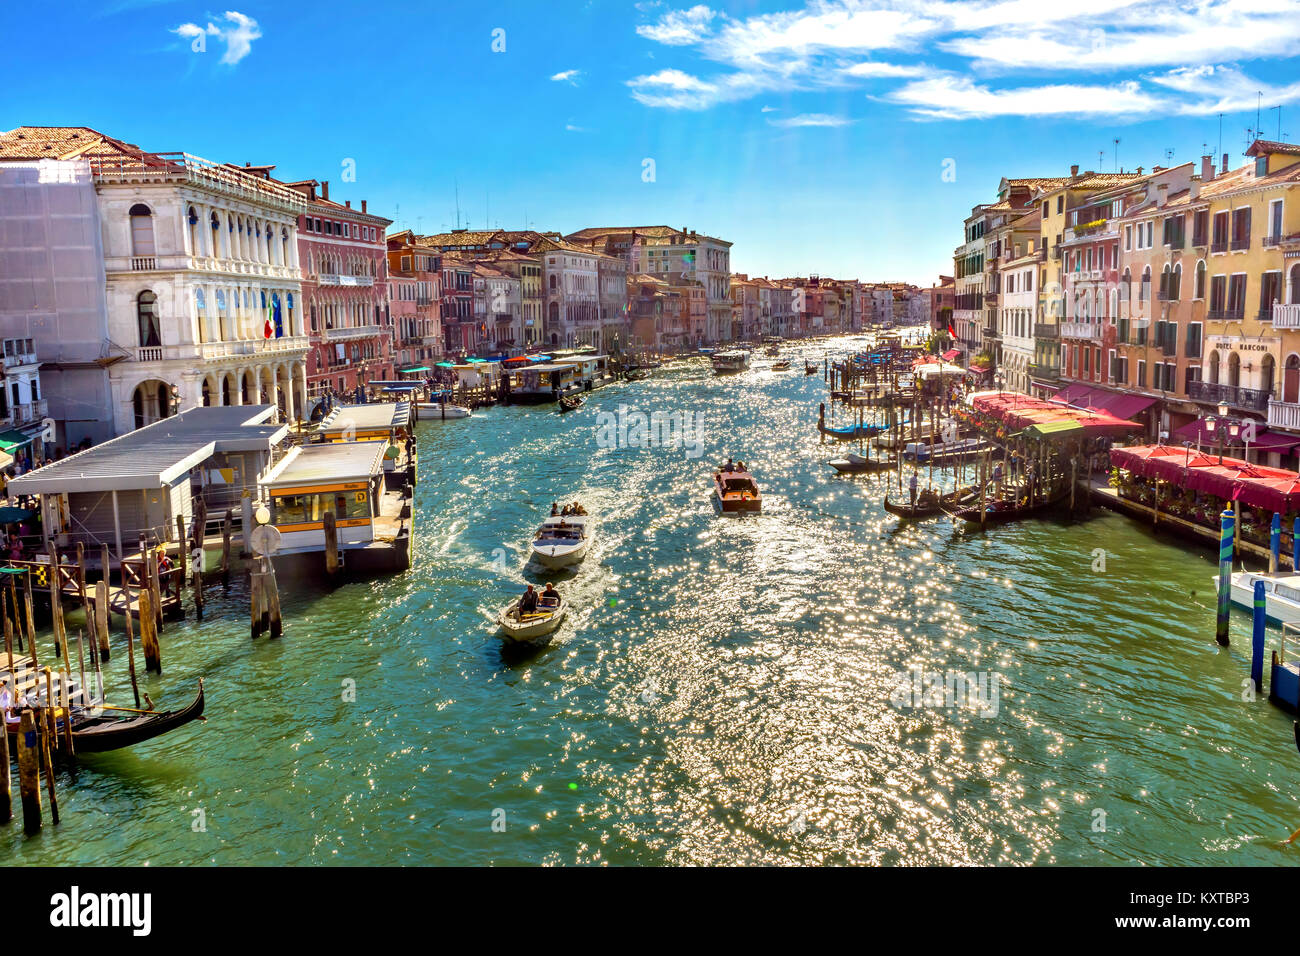 Colorful Grand Canal Public Ferries Vaporetto Ferry Docks Gondolas From Rialto Bridge Touirists Grand Canal Venice Stock Photo